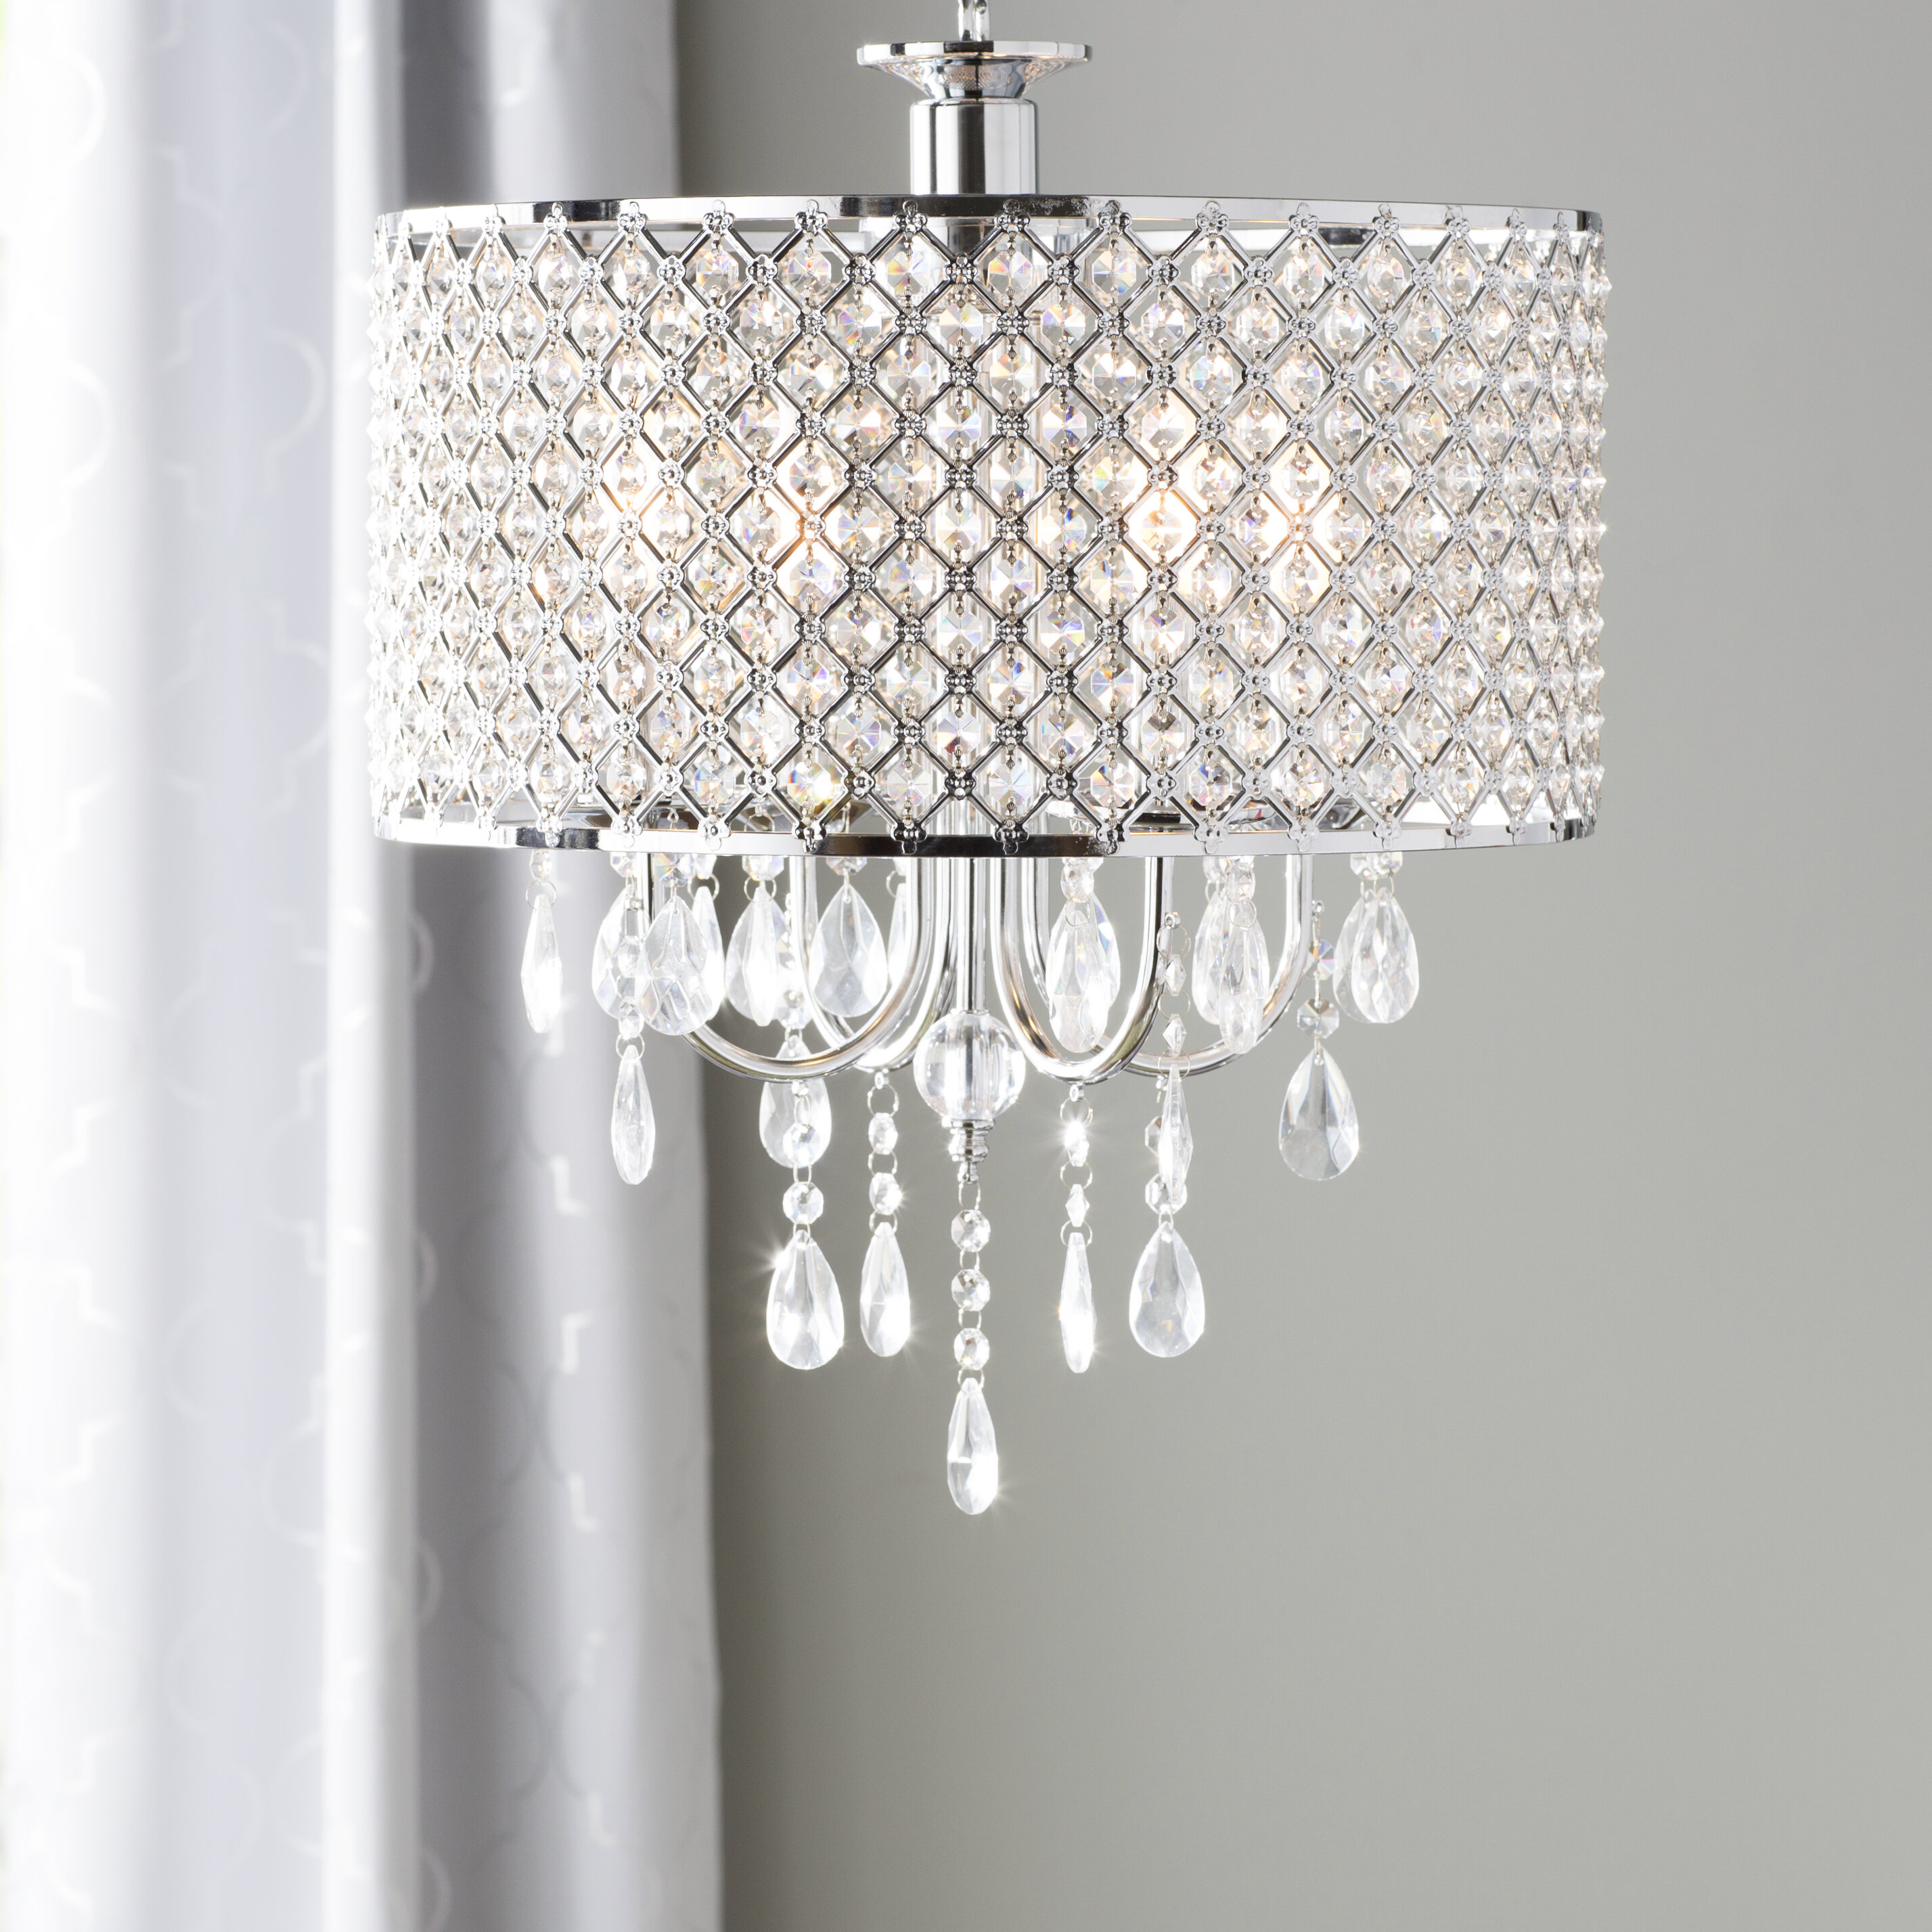 Willa arlo interiors aurore 4 light led crystal chandelier reviews willa arlo interiors aurore 4 light led crystal chandelier reviews wayfair aloadofball Image collections